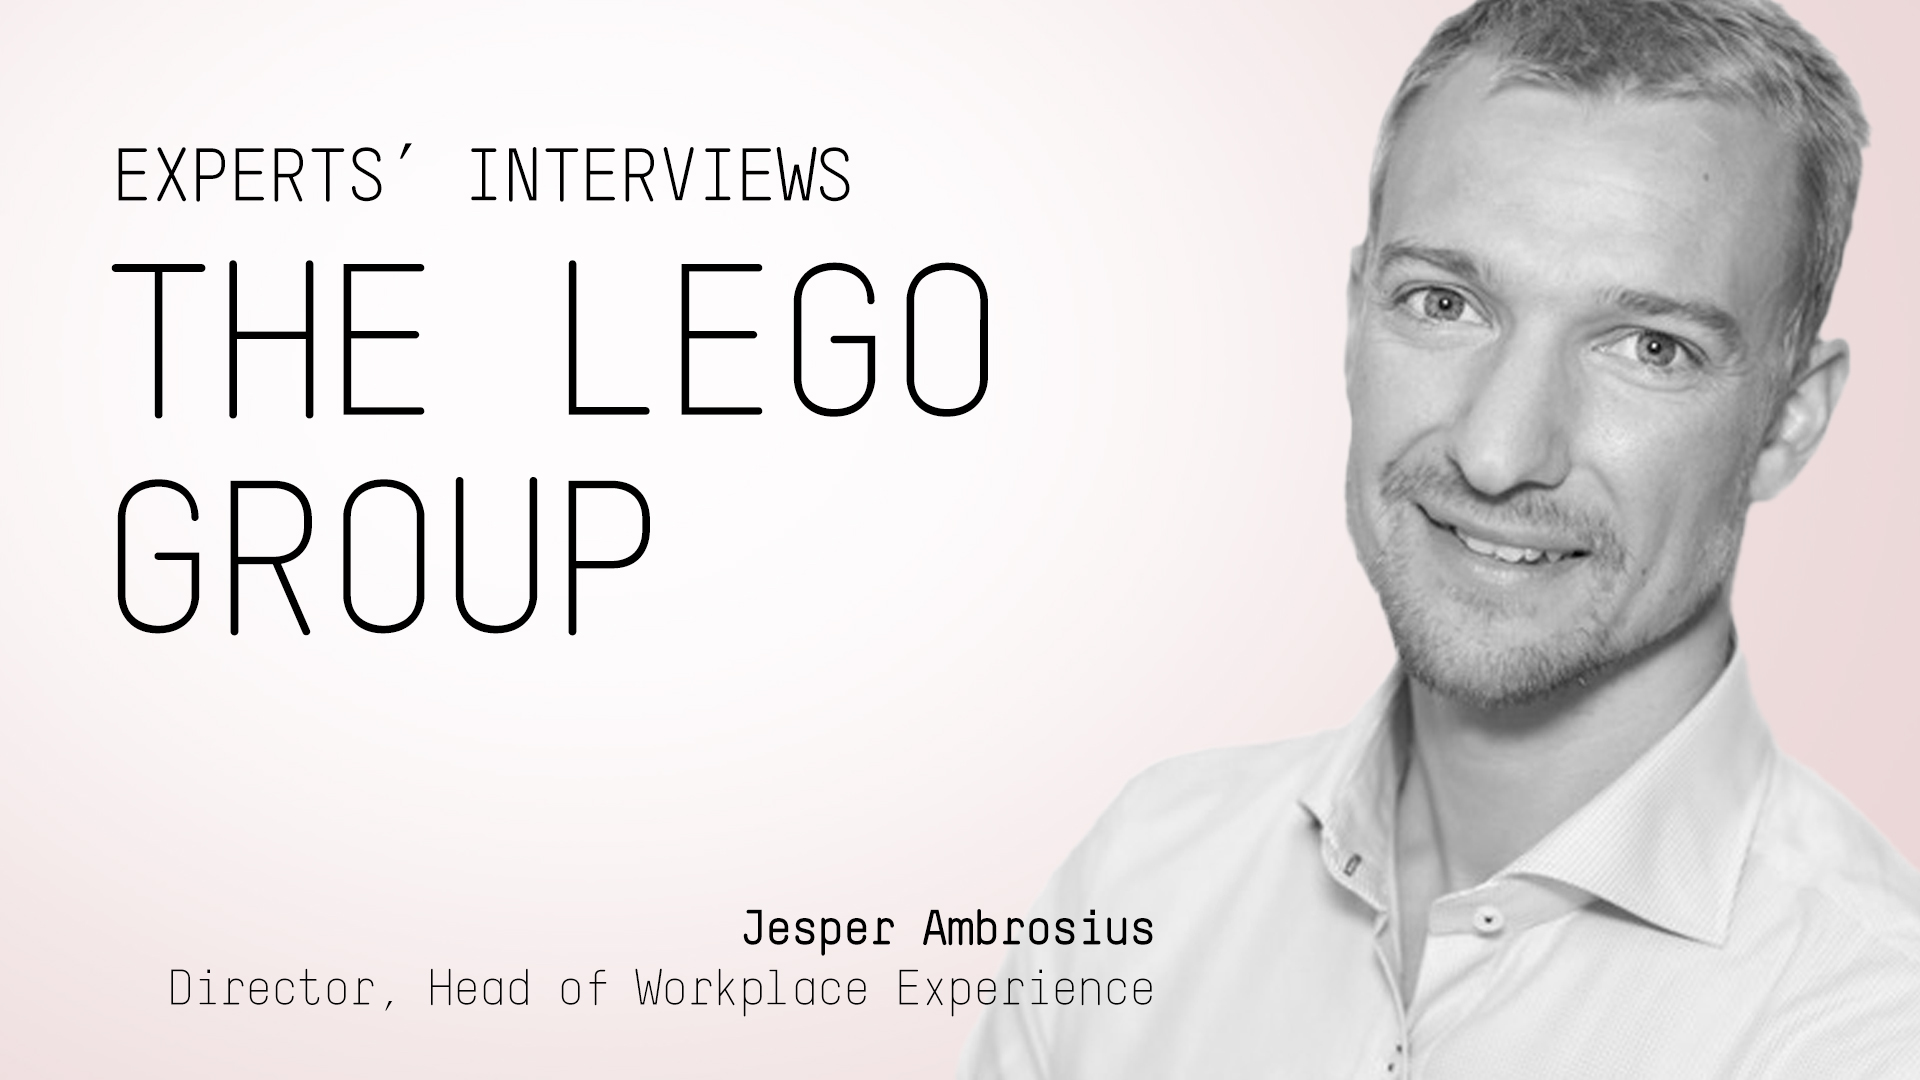 Jesper Ambrosius about the world of workplace